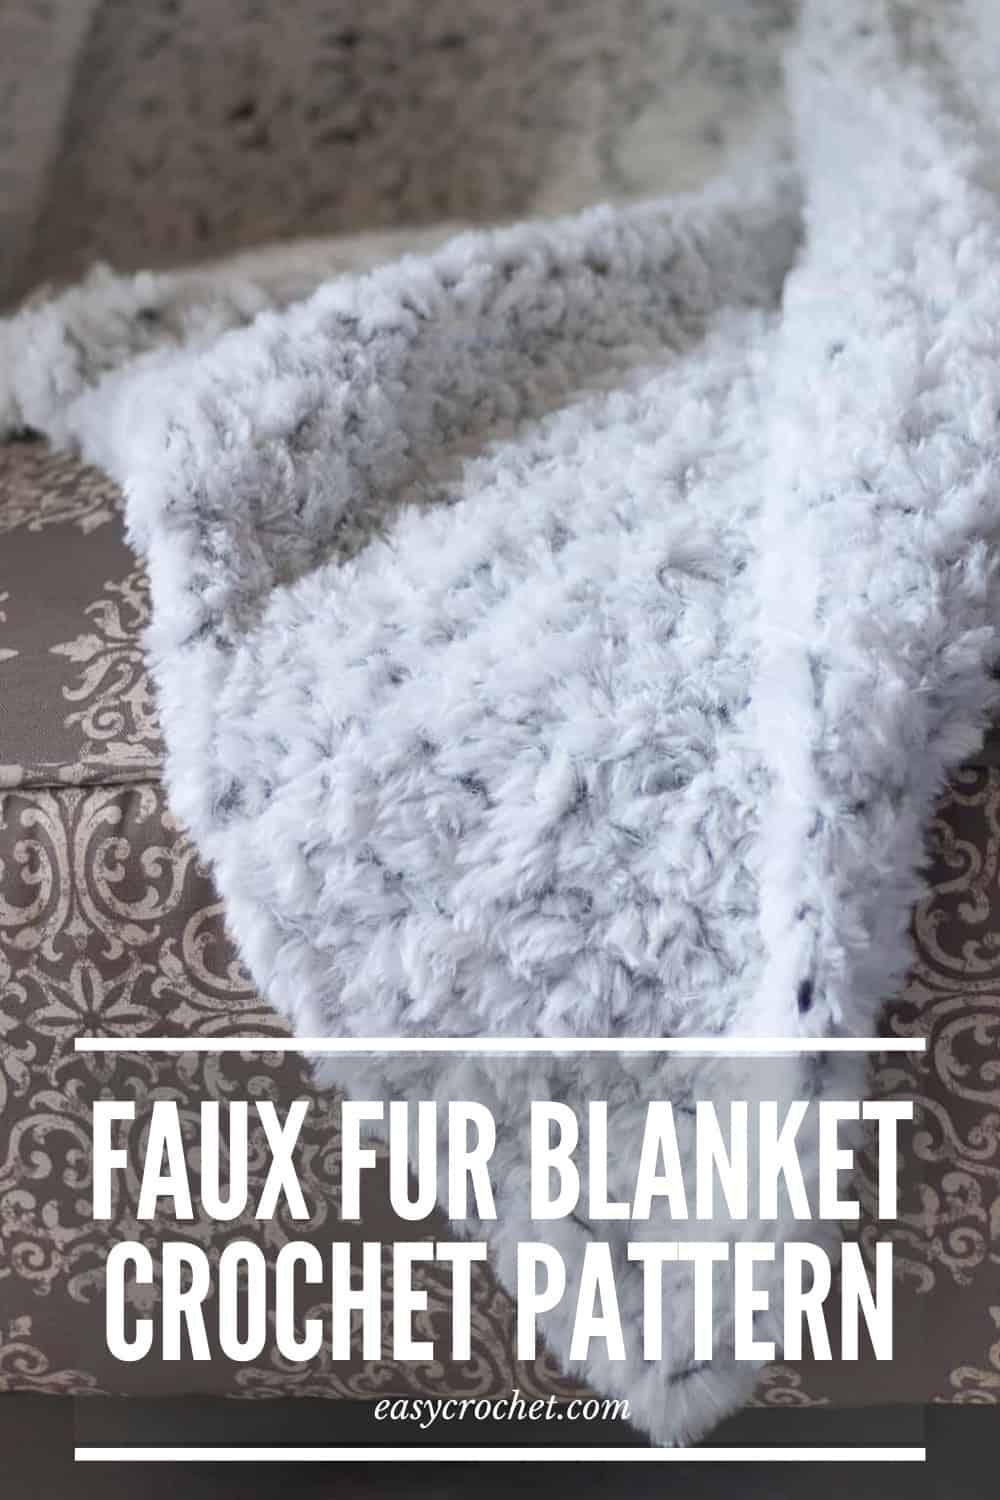 Free Crochet Blanket Pattern using Faux Fur Yarn from Easycrochet.com via @easycrochetcom